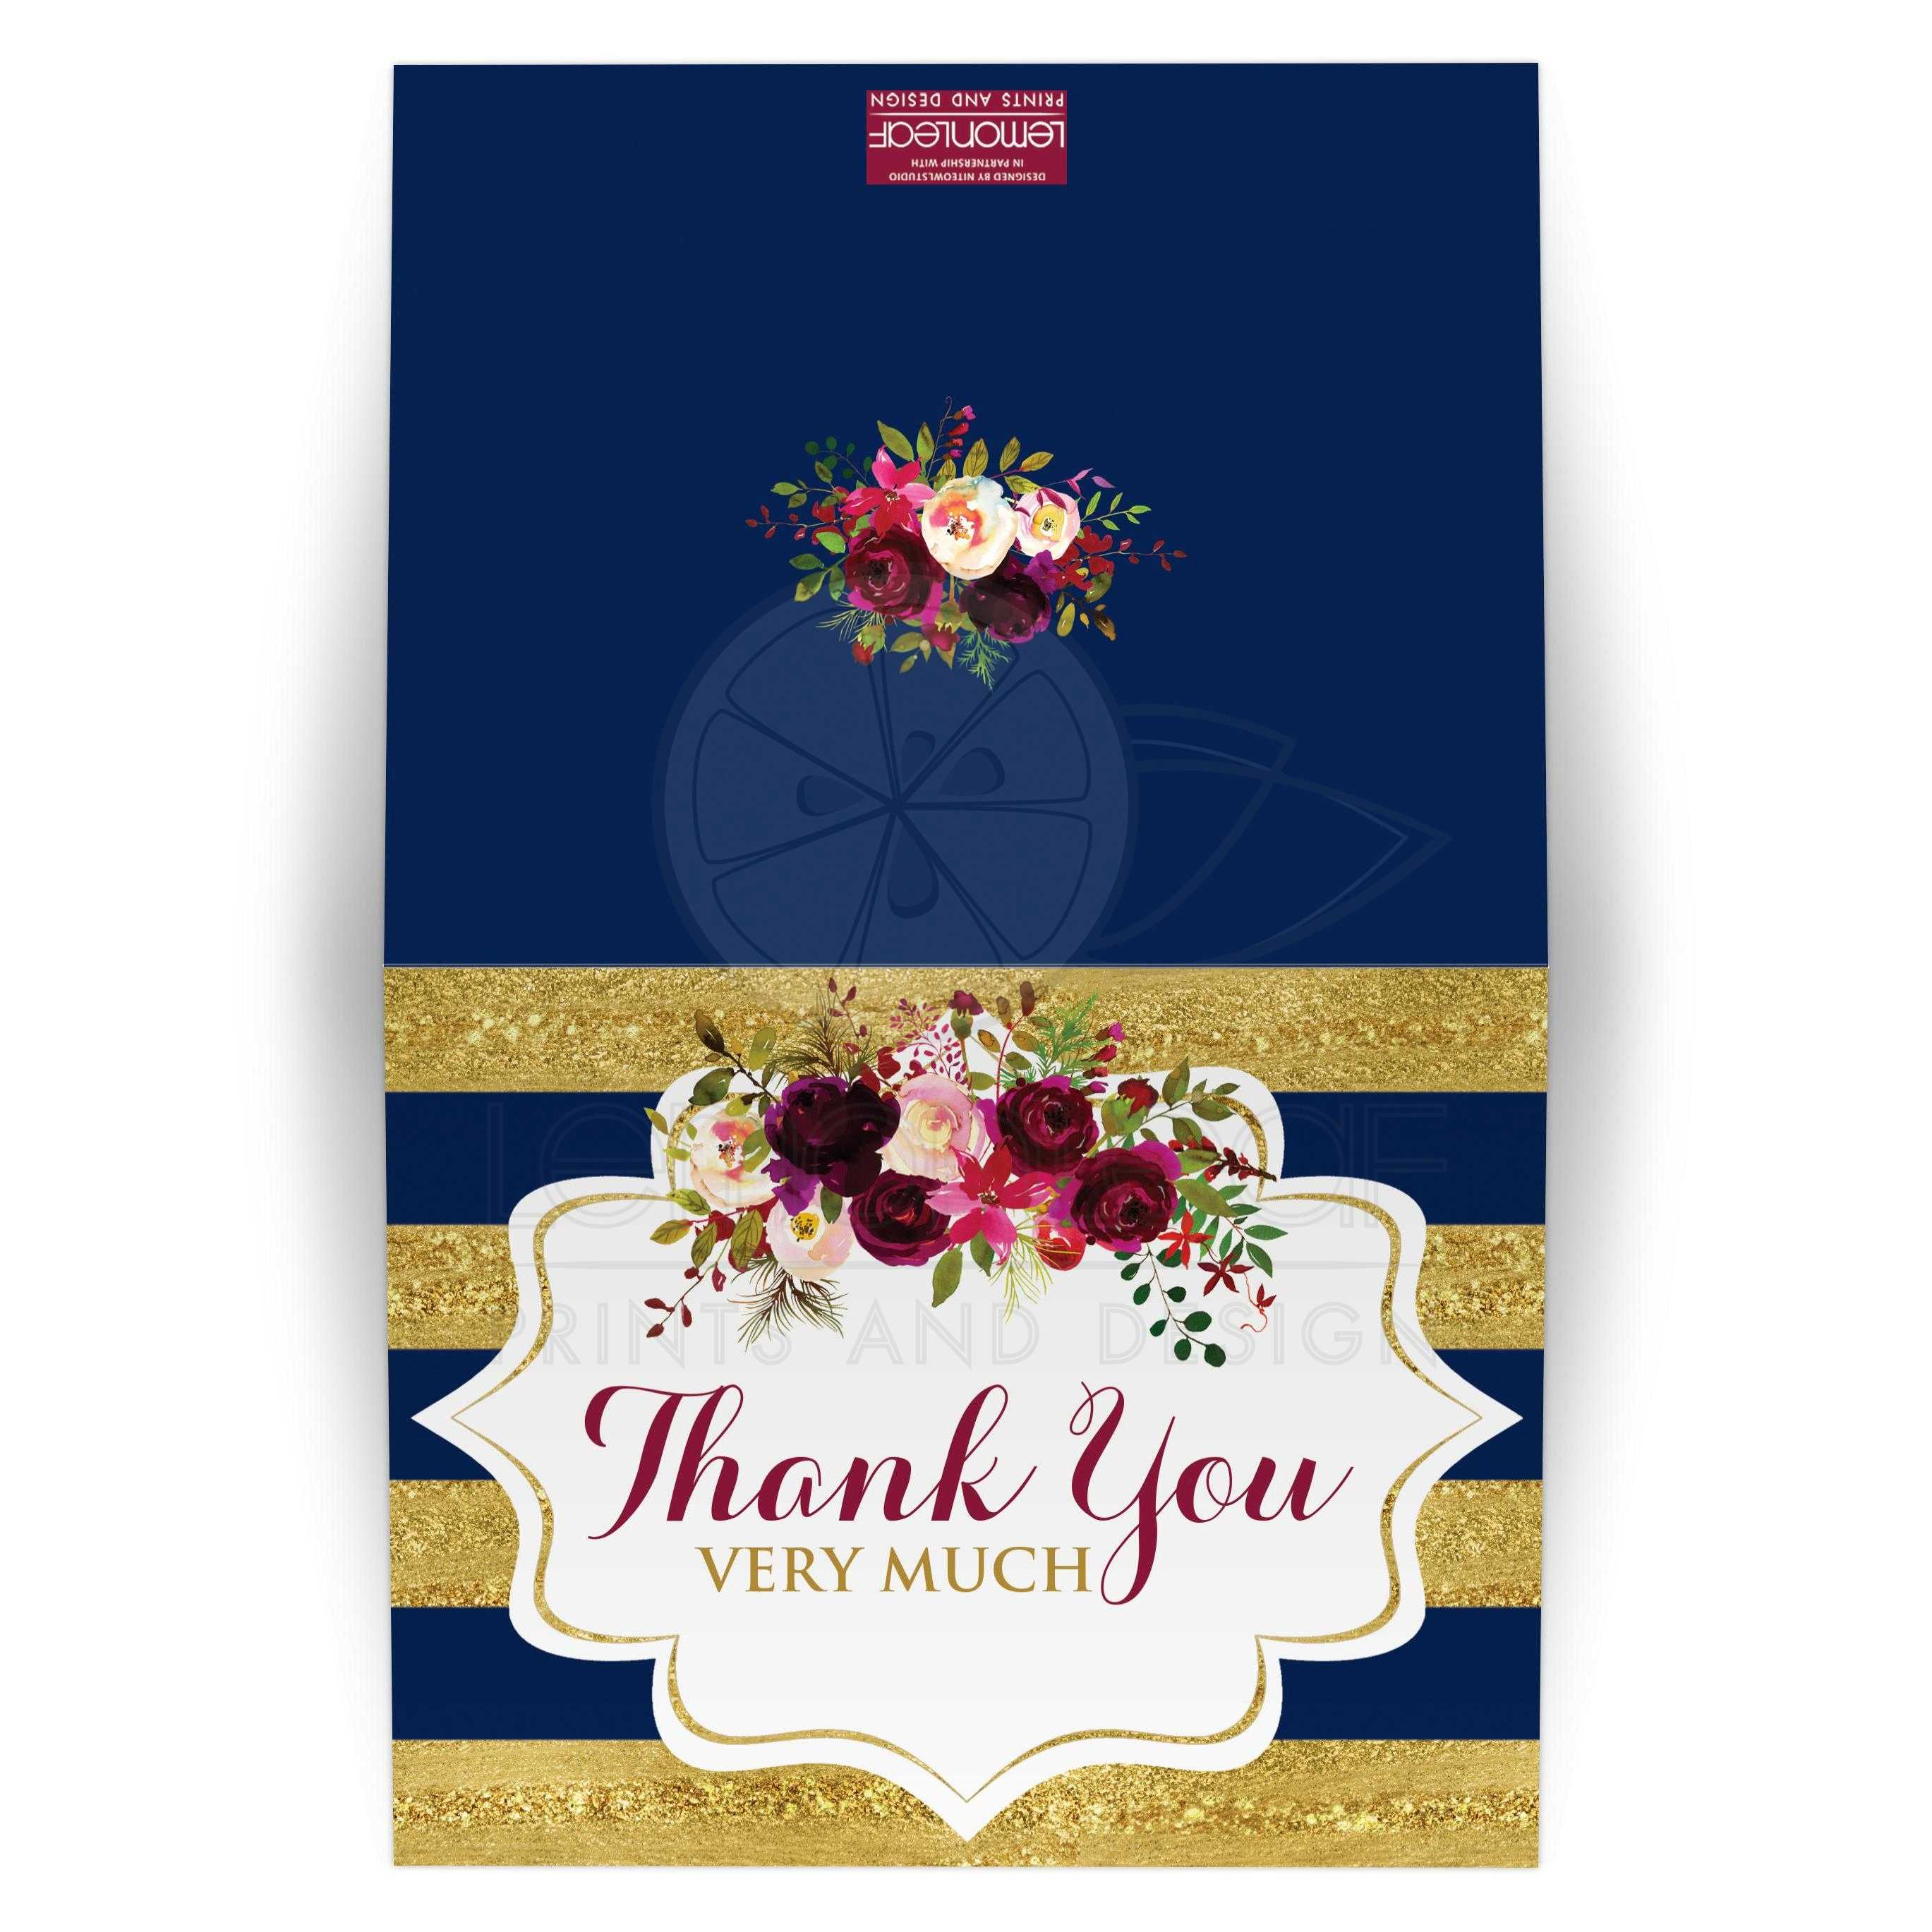 Watercolor Floral Thank You Card Burgundy Navy Gold Simulated